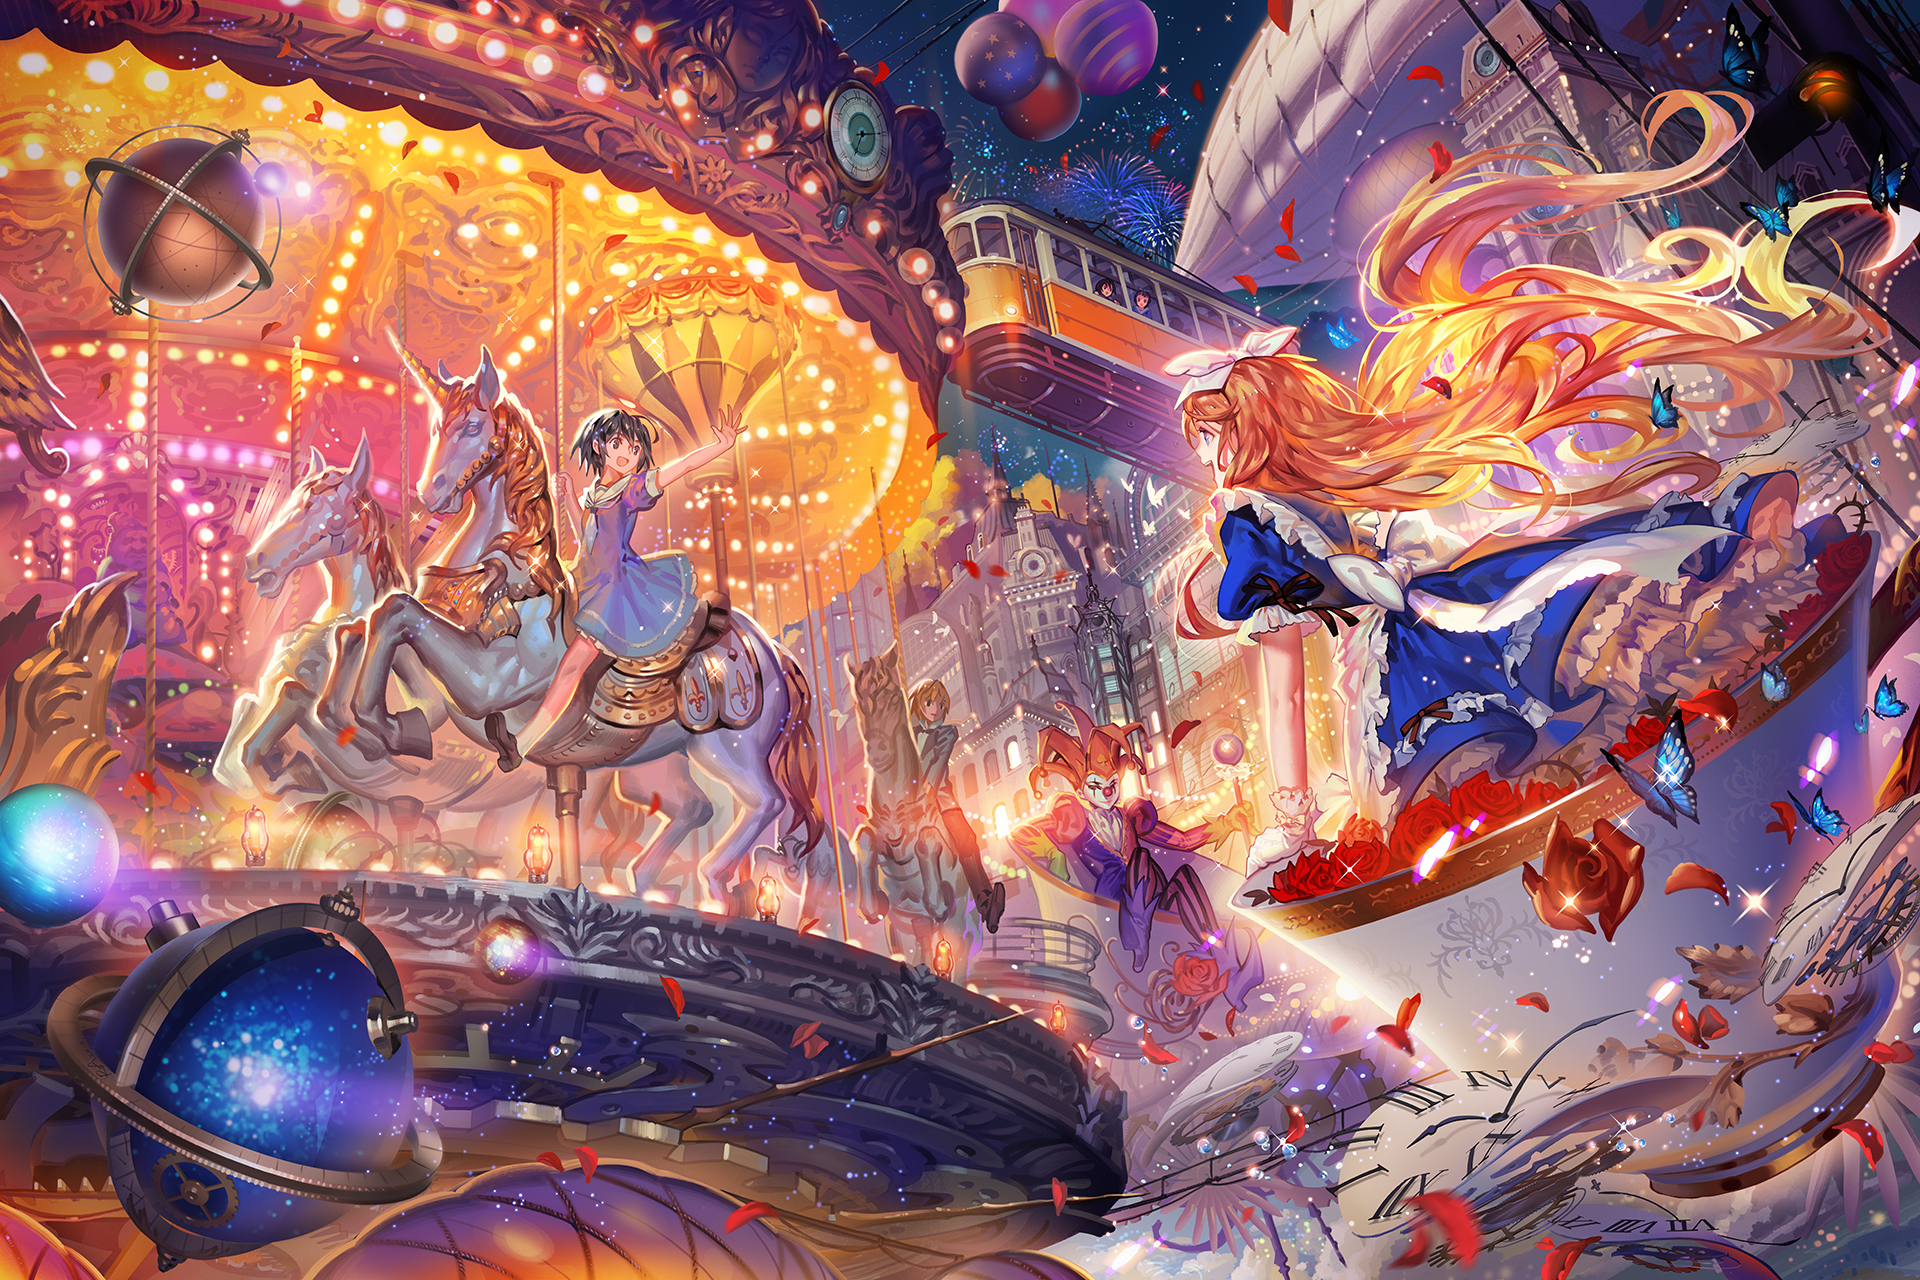 Wallpaper Falling Down Carousel Zerochan Anime Image Board